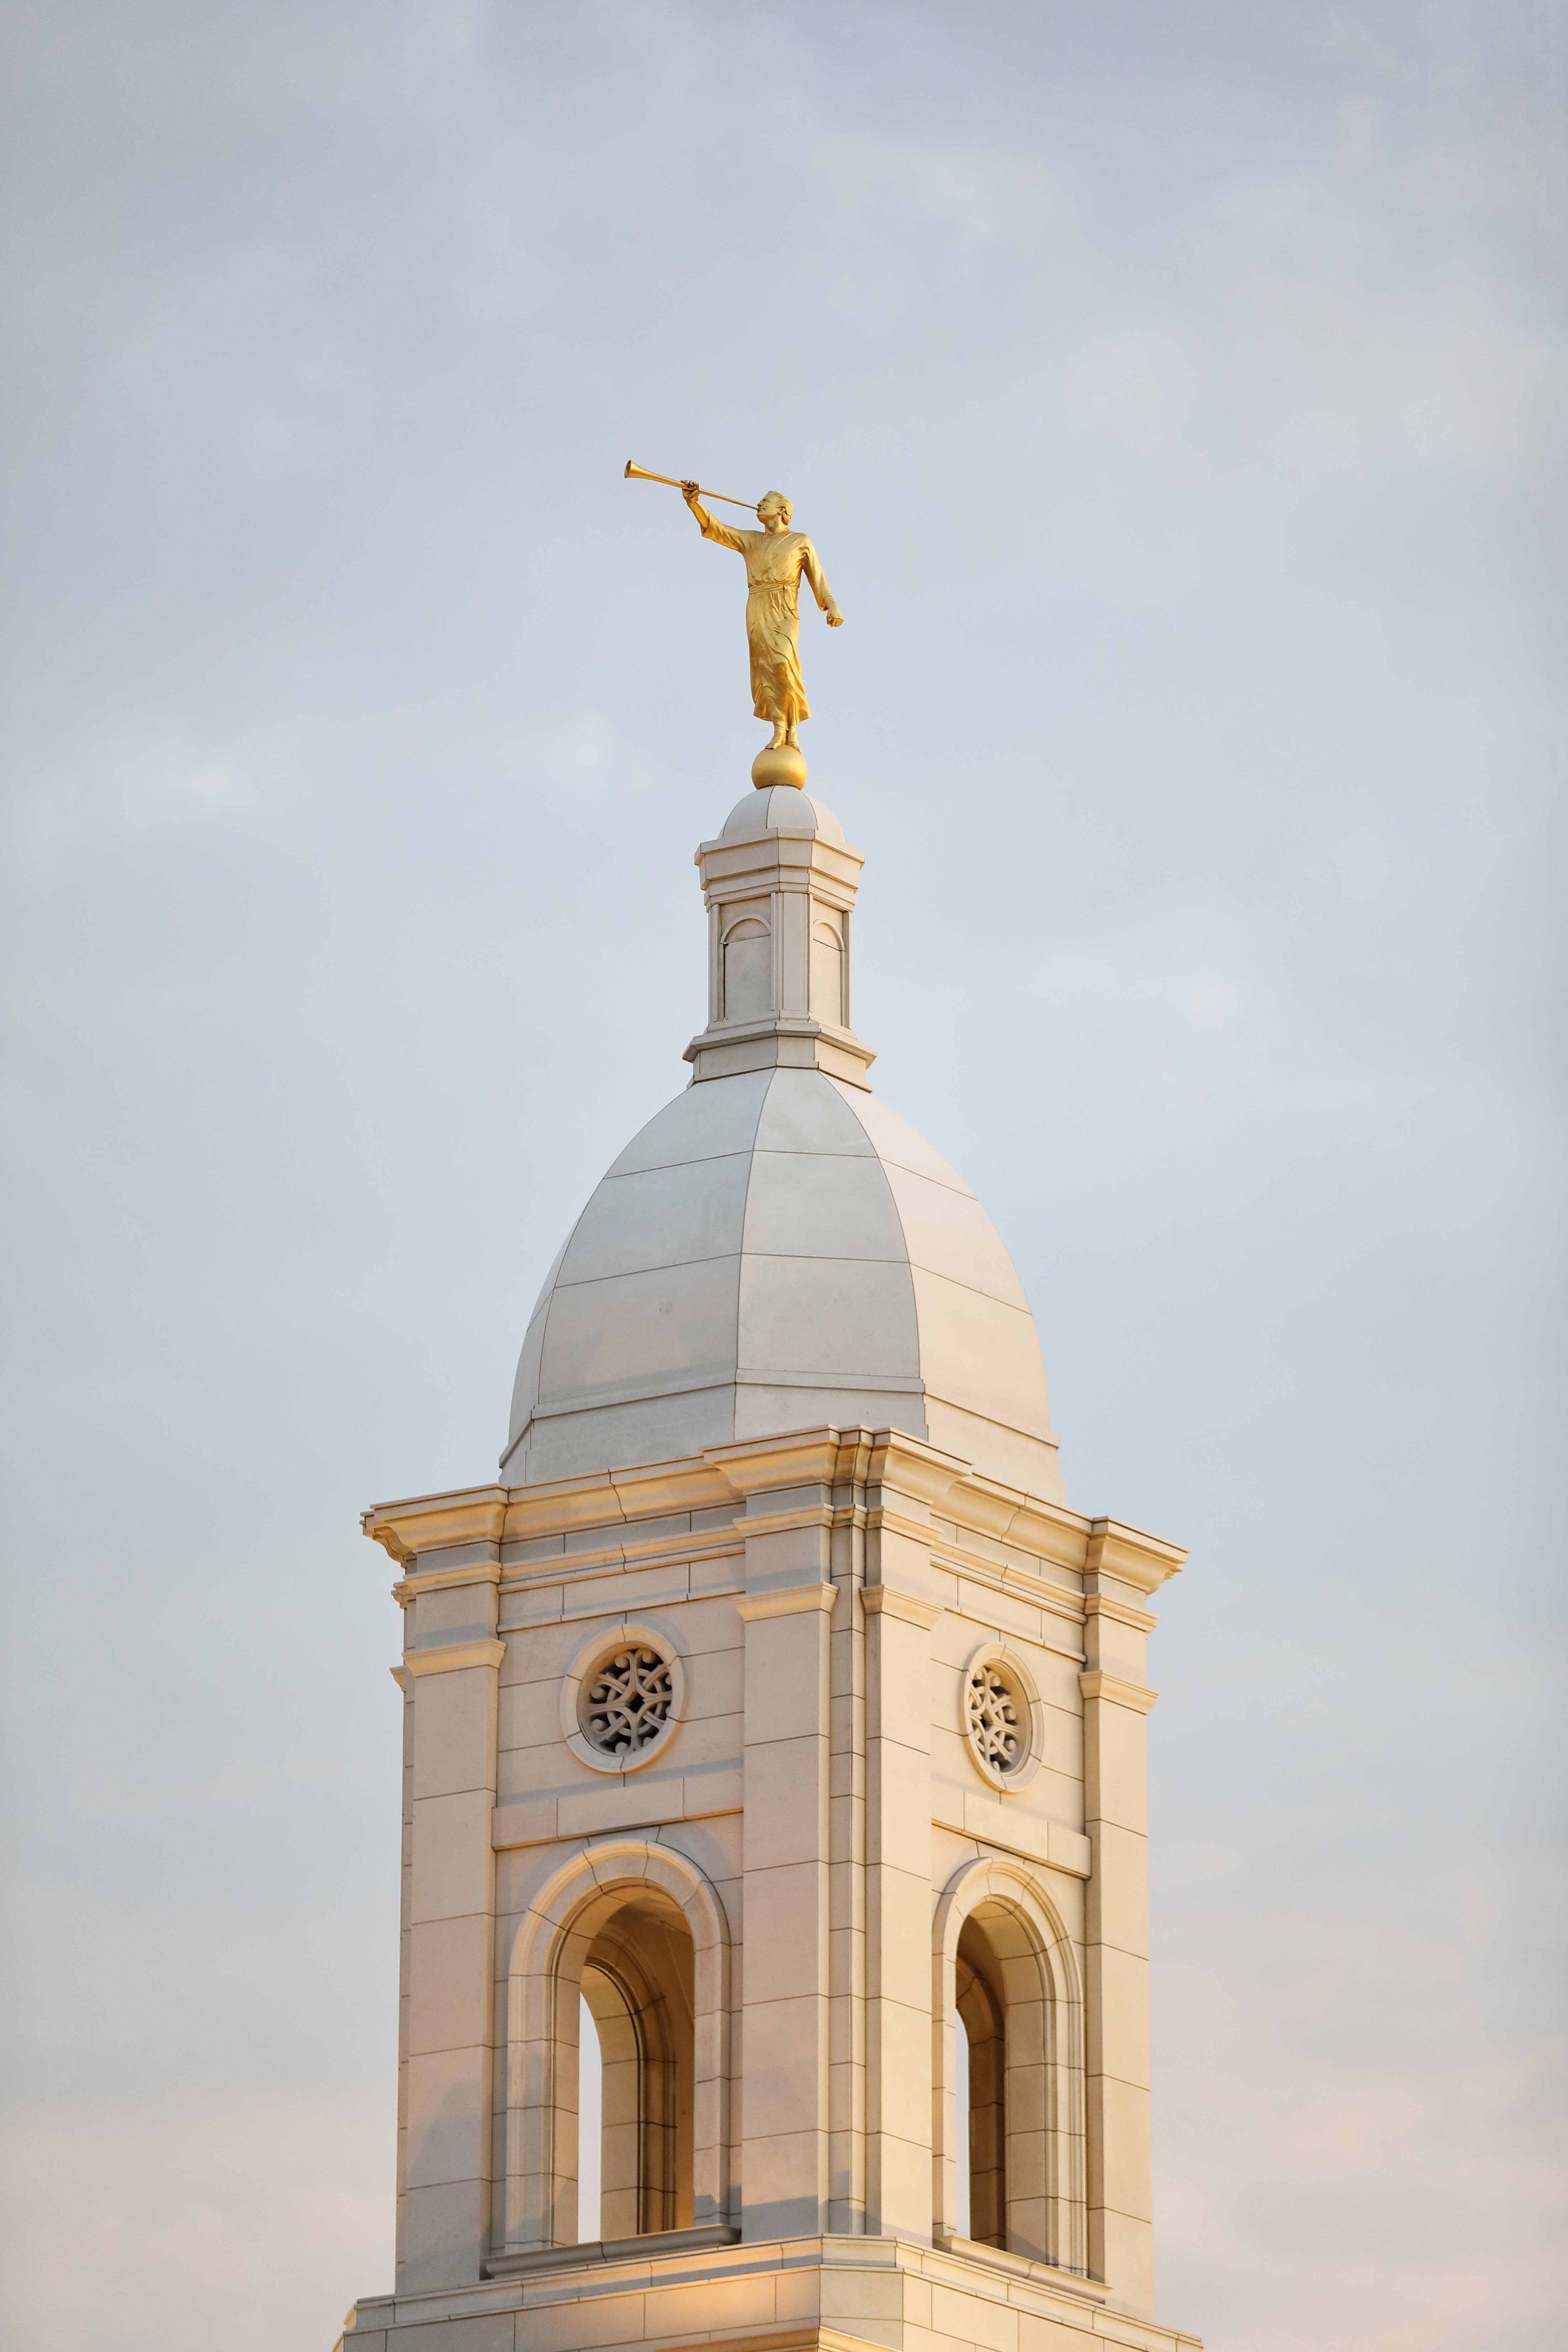 Statue of the angel Moroni on top of the Barranquilla Colombia Temple.